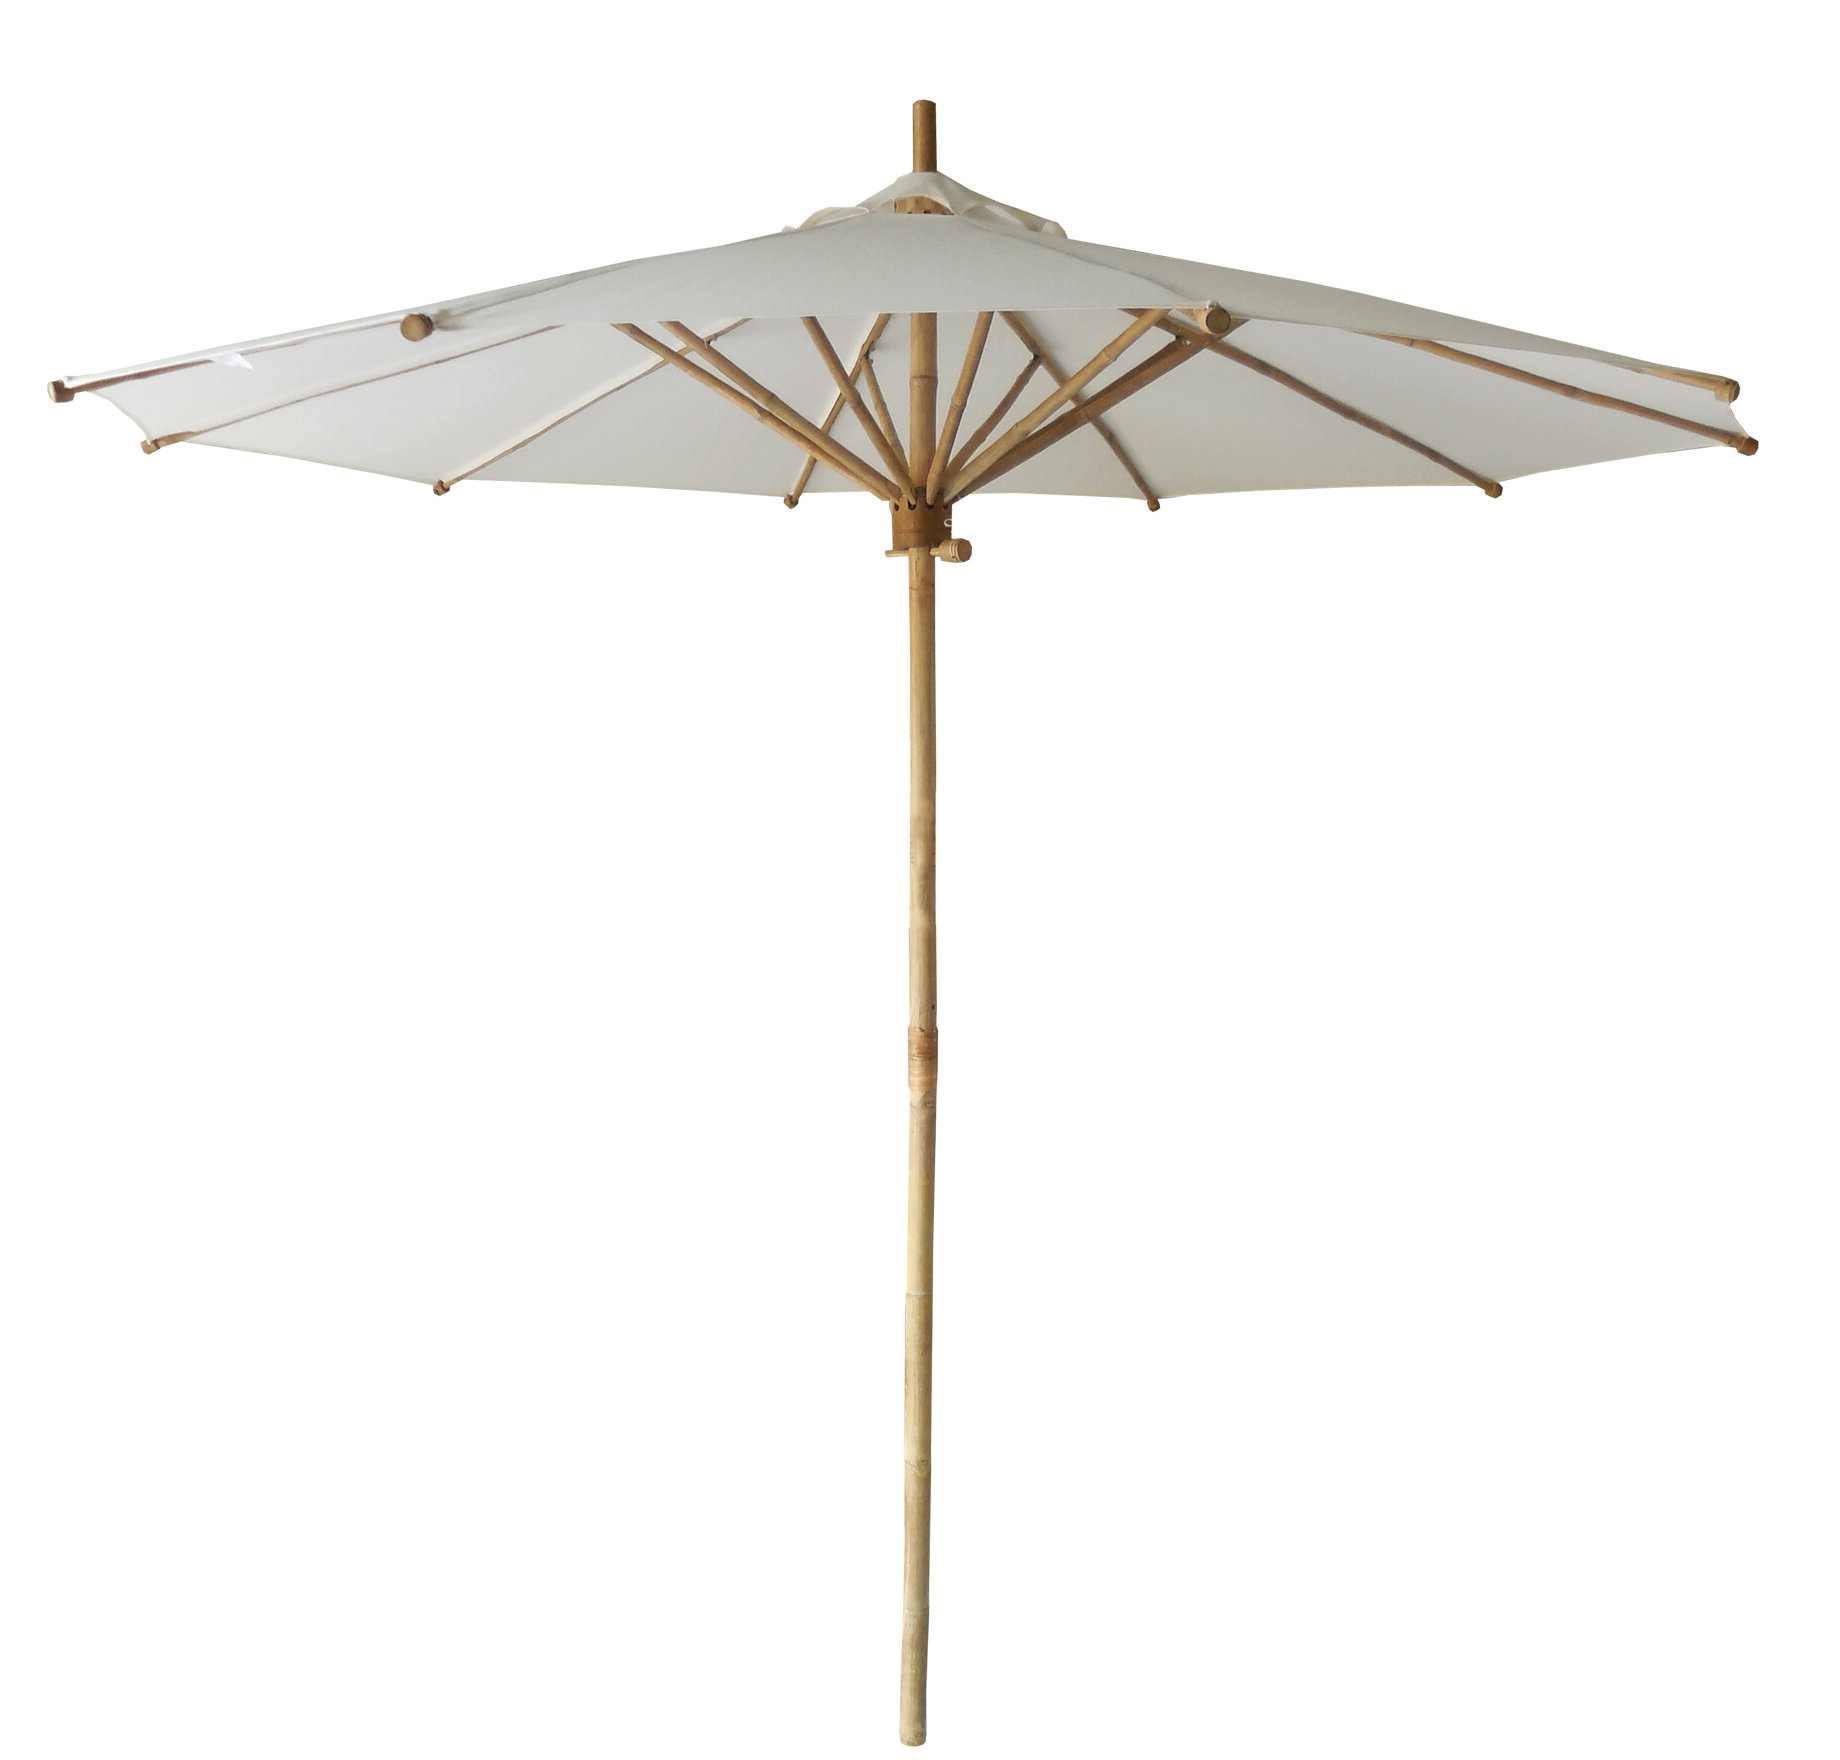 Esai 7' Beach Umbrella Intended For Well Liked Hyperion Beach Umbrellas (View 7 of 20)